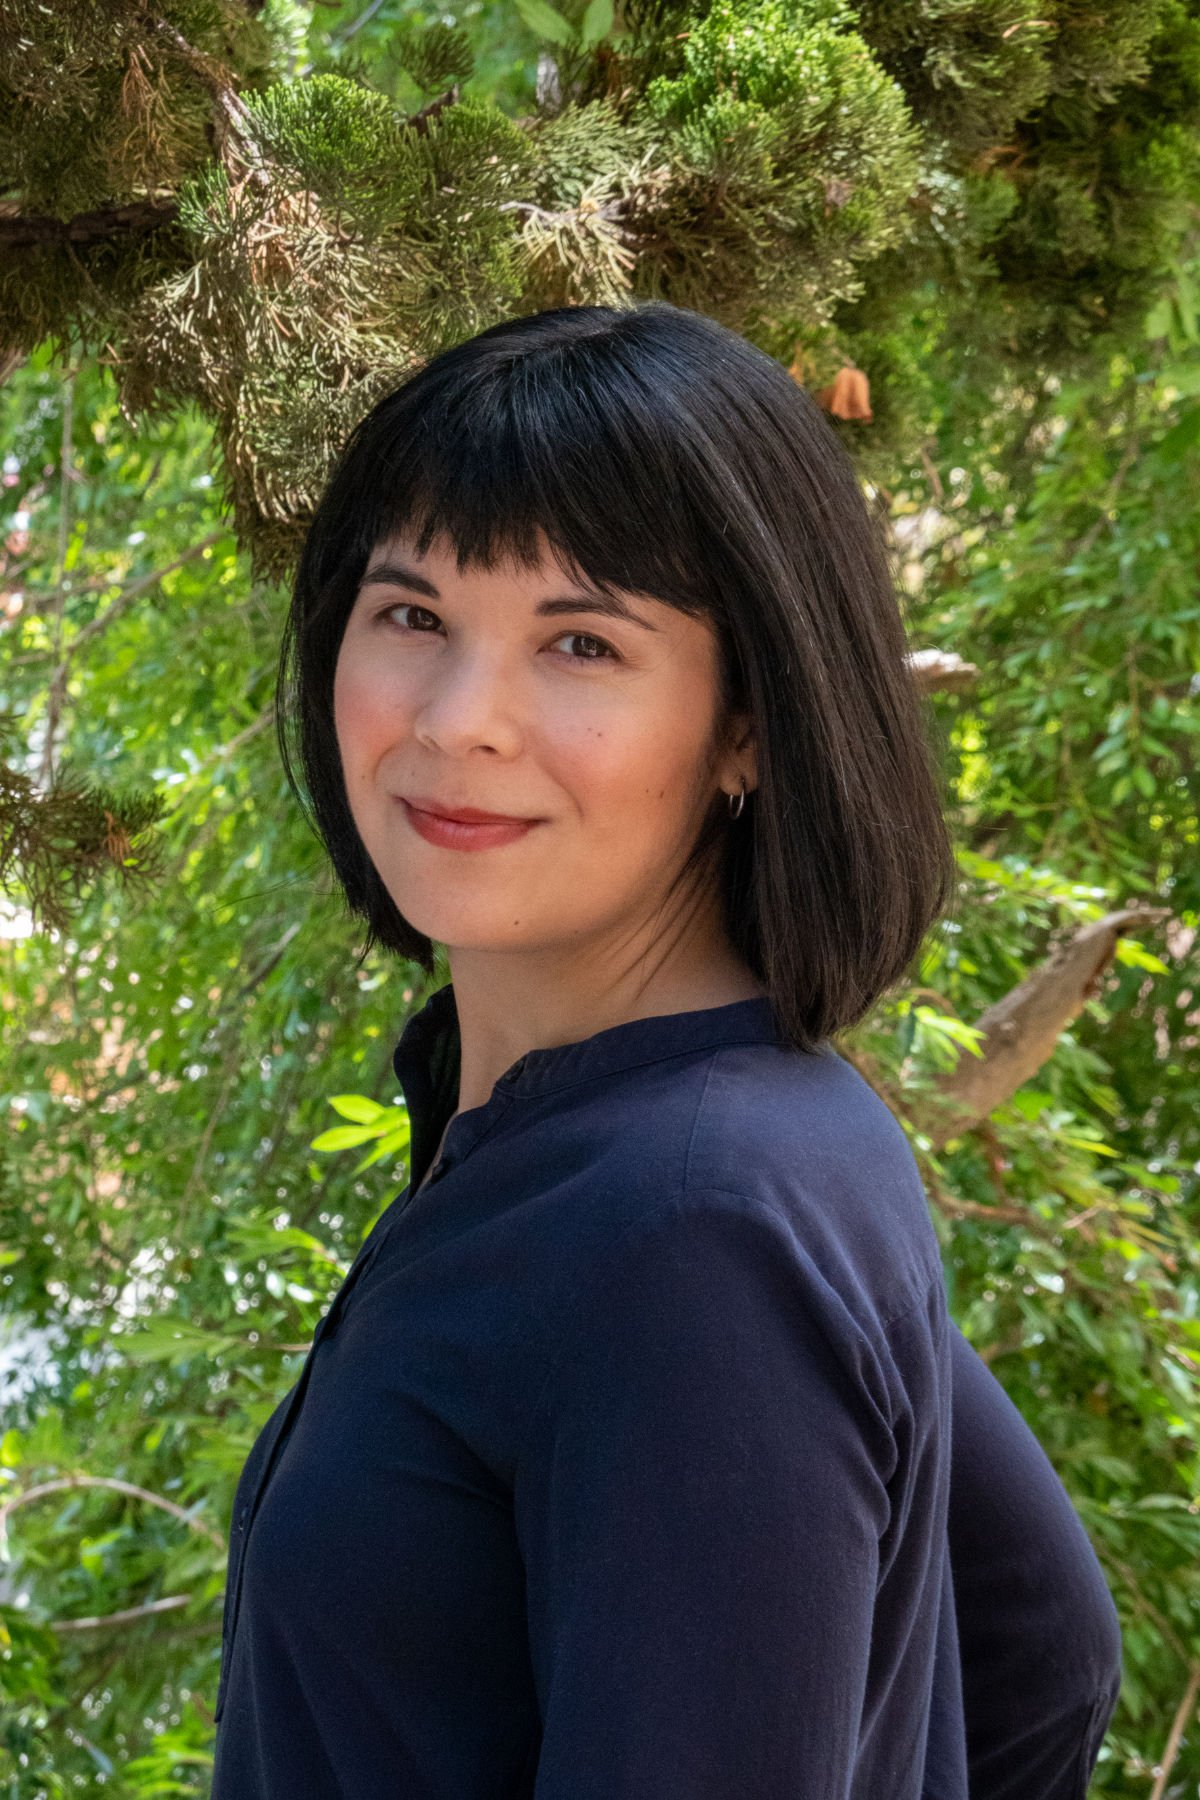 Miyoko Conley Photo with a tree in the background.